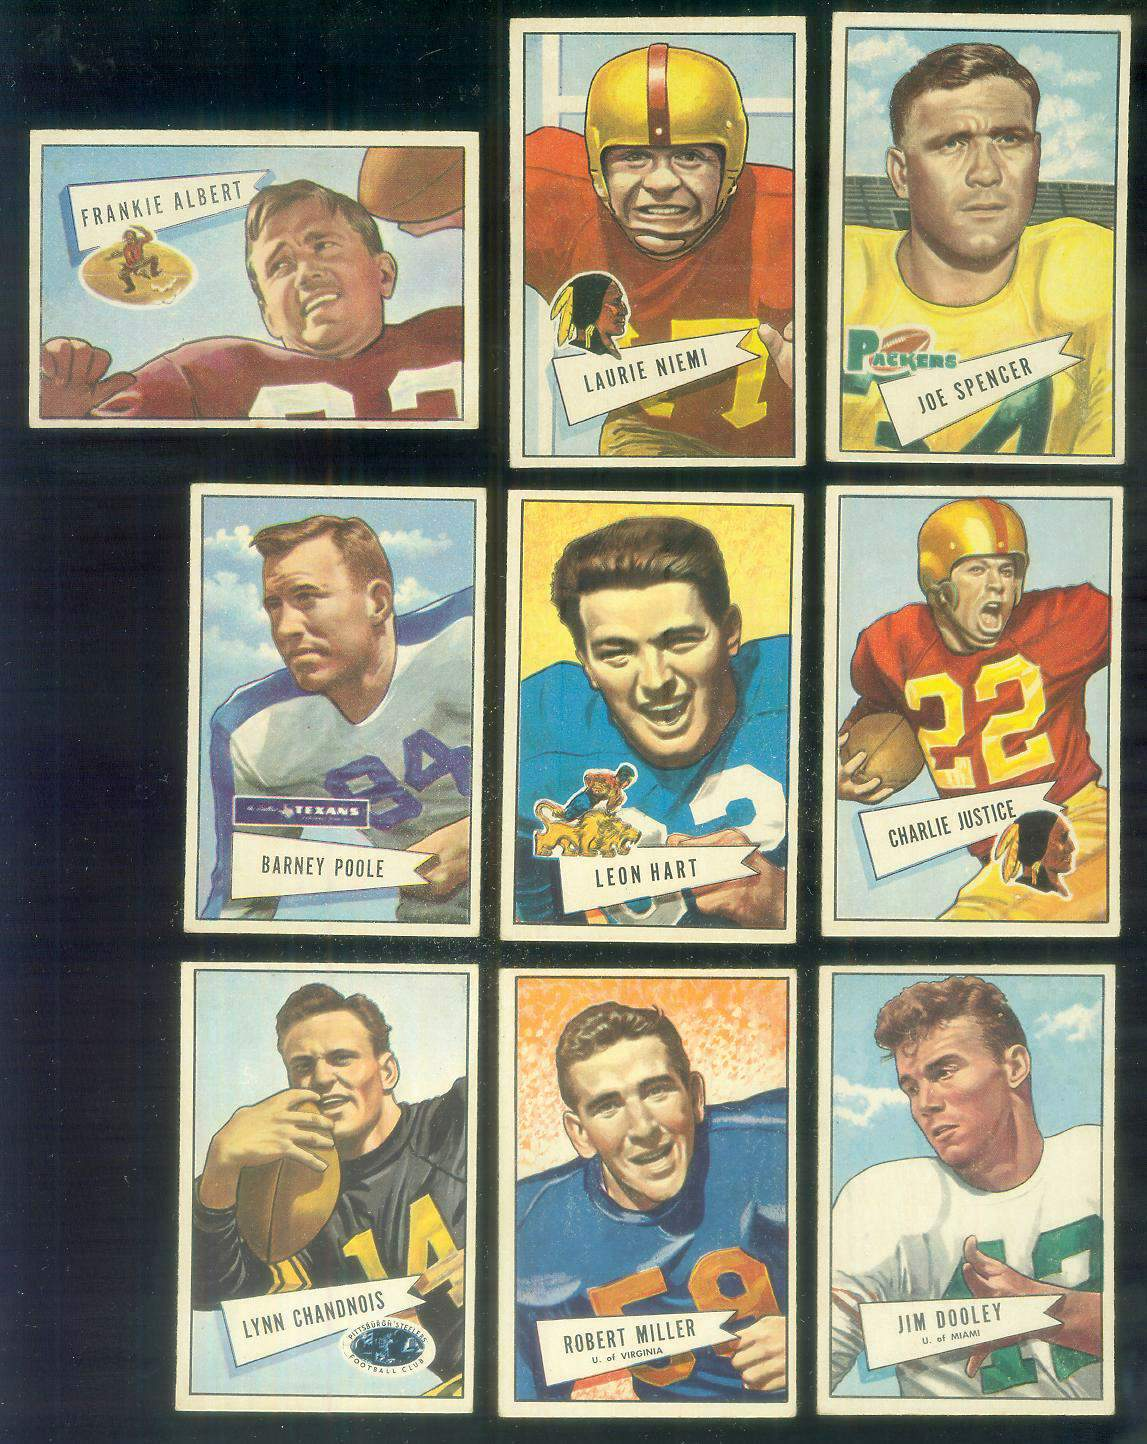 1952 Bowman Small FB #..6 Laurie Niemi (Redskins) Football cards value